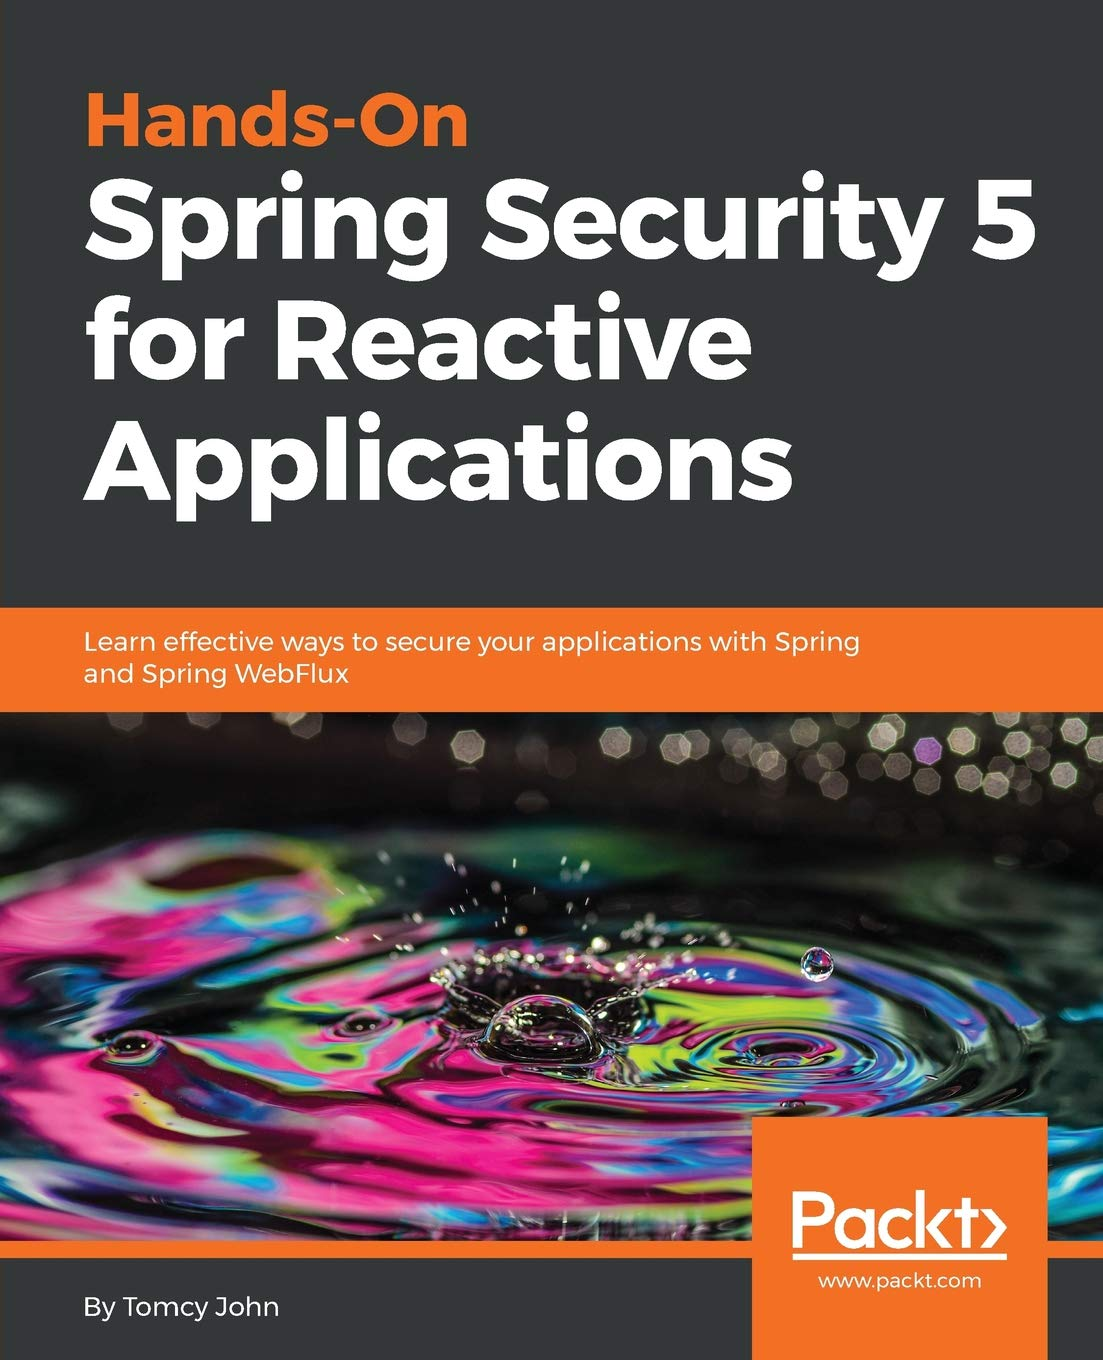 Hands-On Spring Security 5 for Reactive Applications: Learn